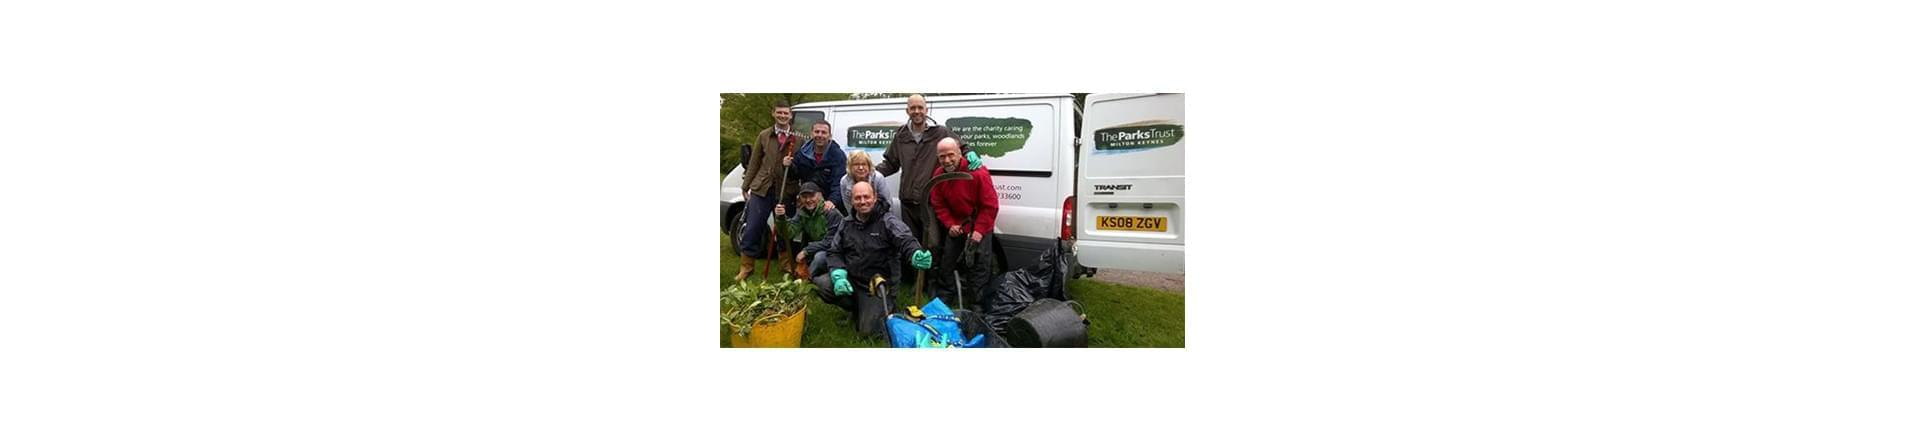 a team of T-Systems employees volunteering at The Parks Trust in Milton Keynes